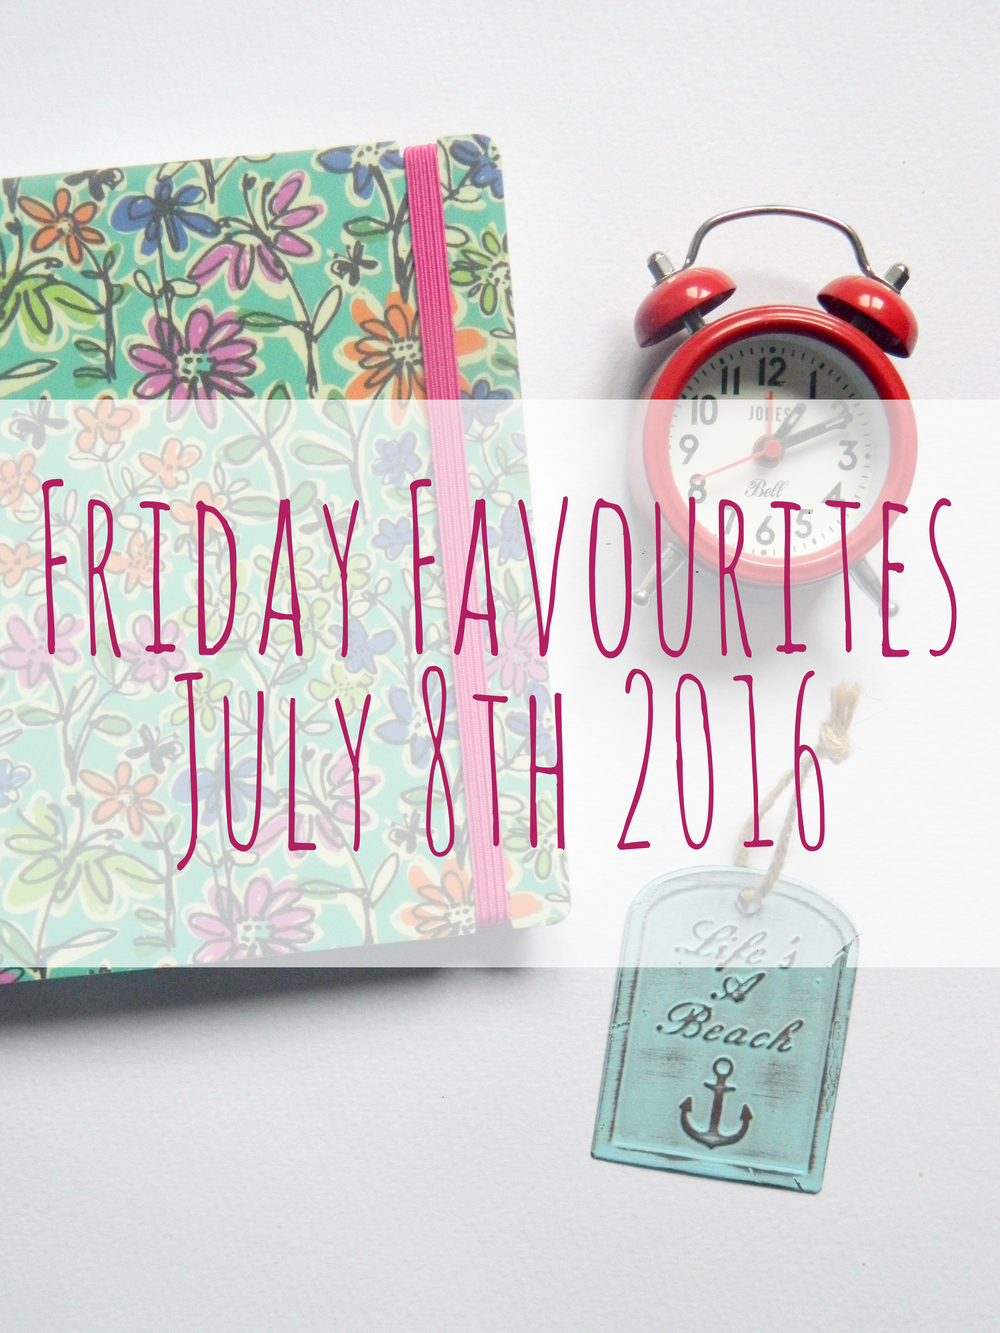 Friday Favourites 8th July 2016.